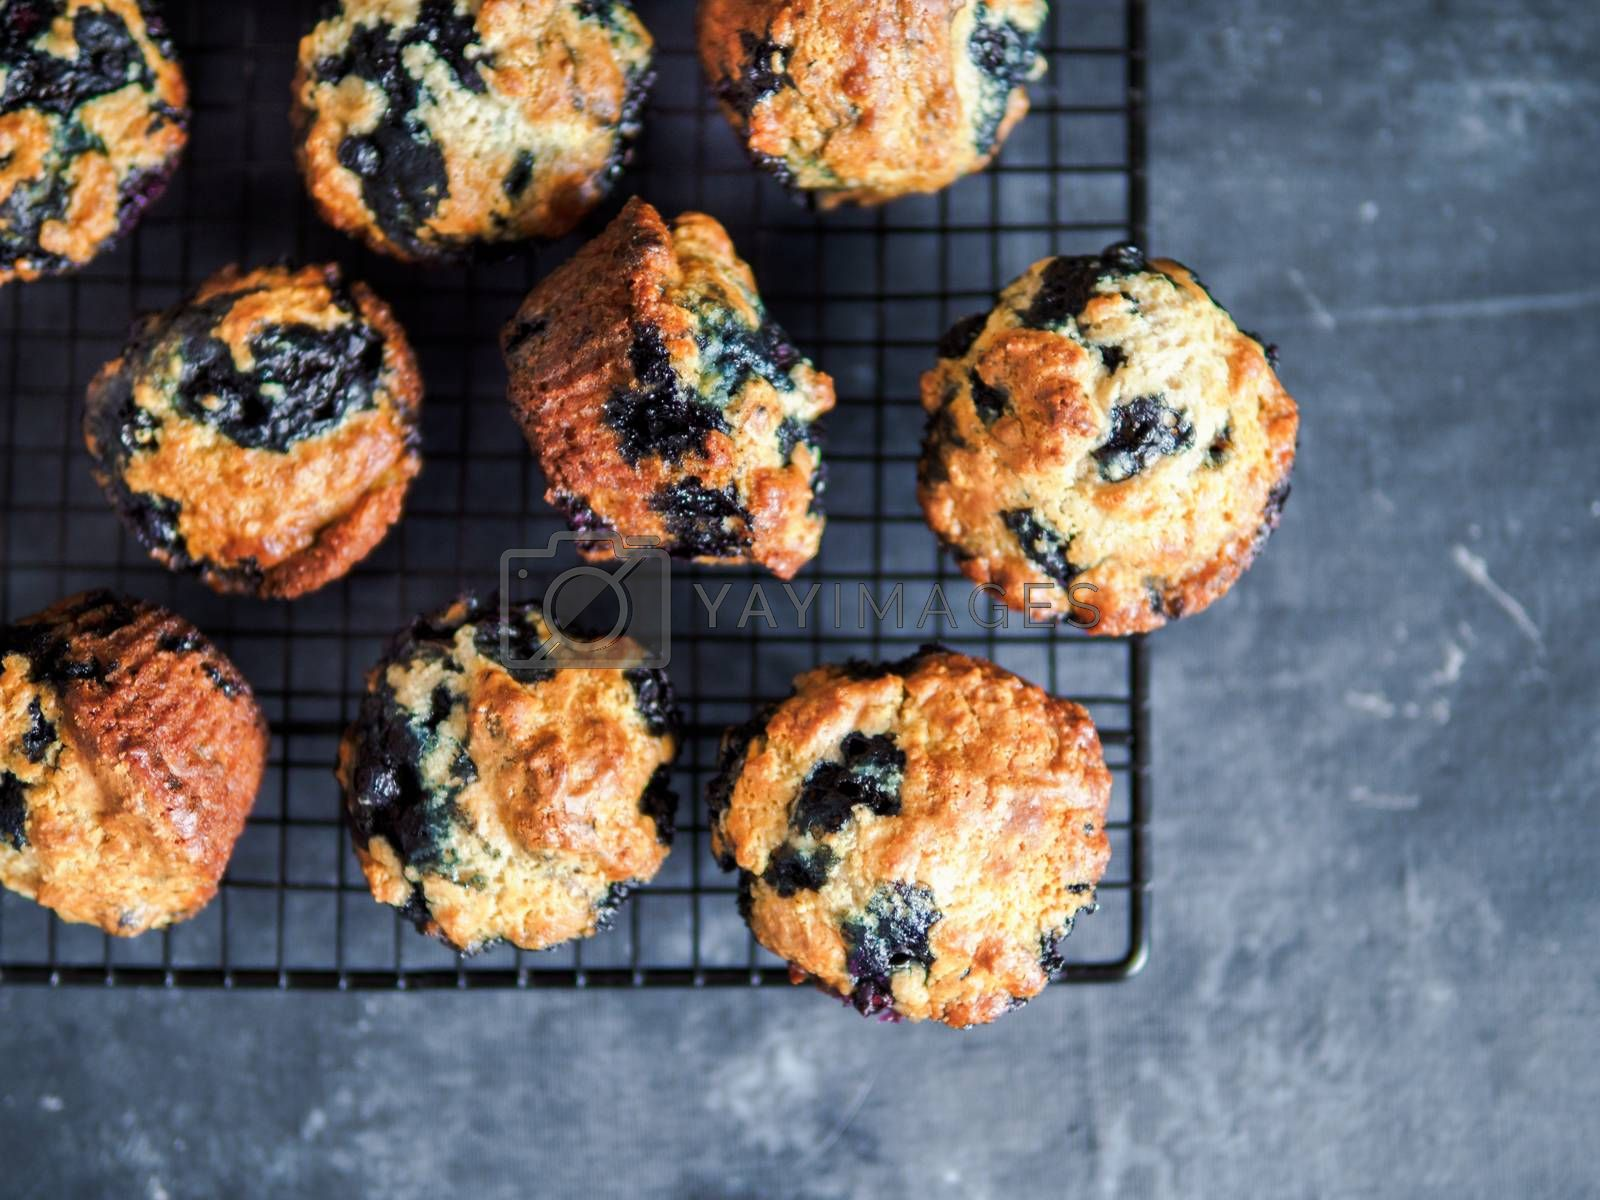 Homemade vegan blueberry muffins on cooling rack. Vegetarian egg-free muffins on dark background. Top view or flat lay. Copy space for text or design.